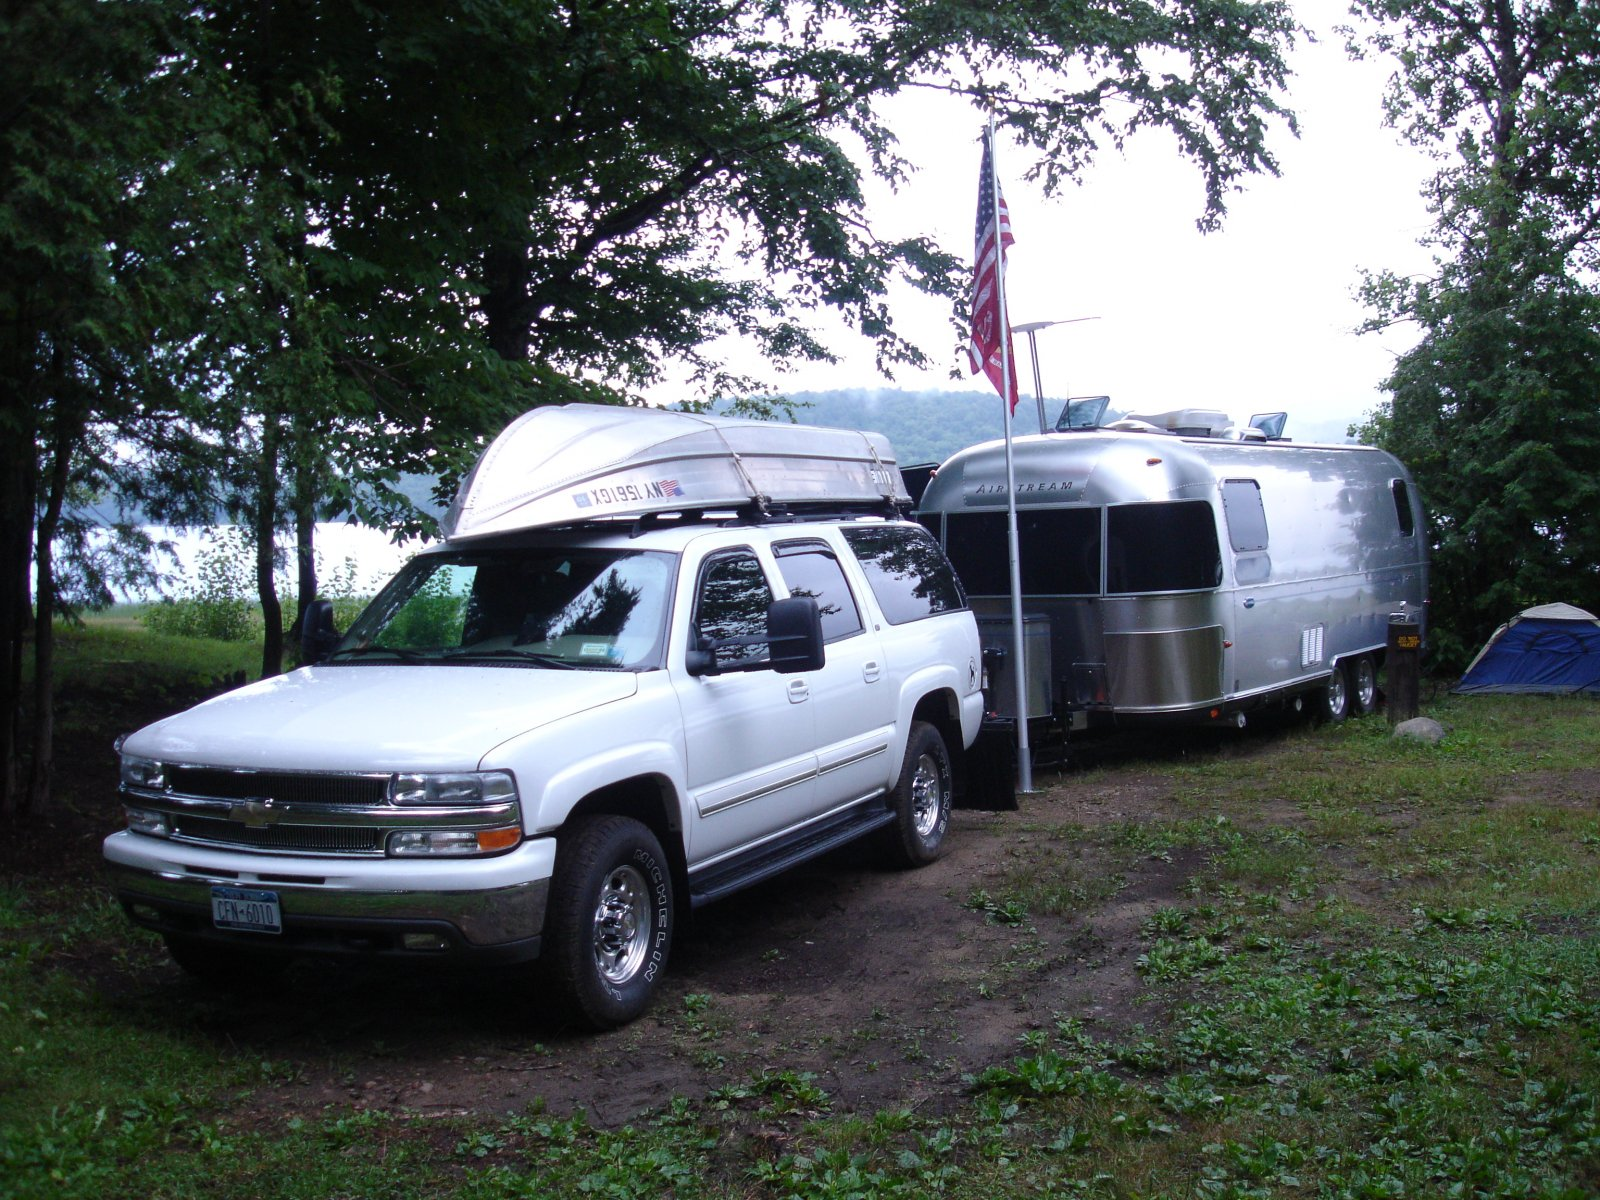 Click image for larger version  Name:PISECO LAKE CAMPING JULY 2006 037.jpg Views:76 Size:473.4 KB ID:65194